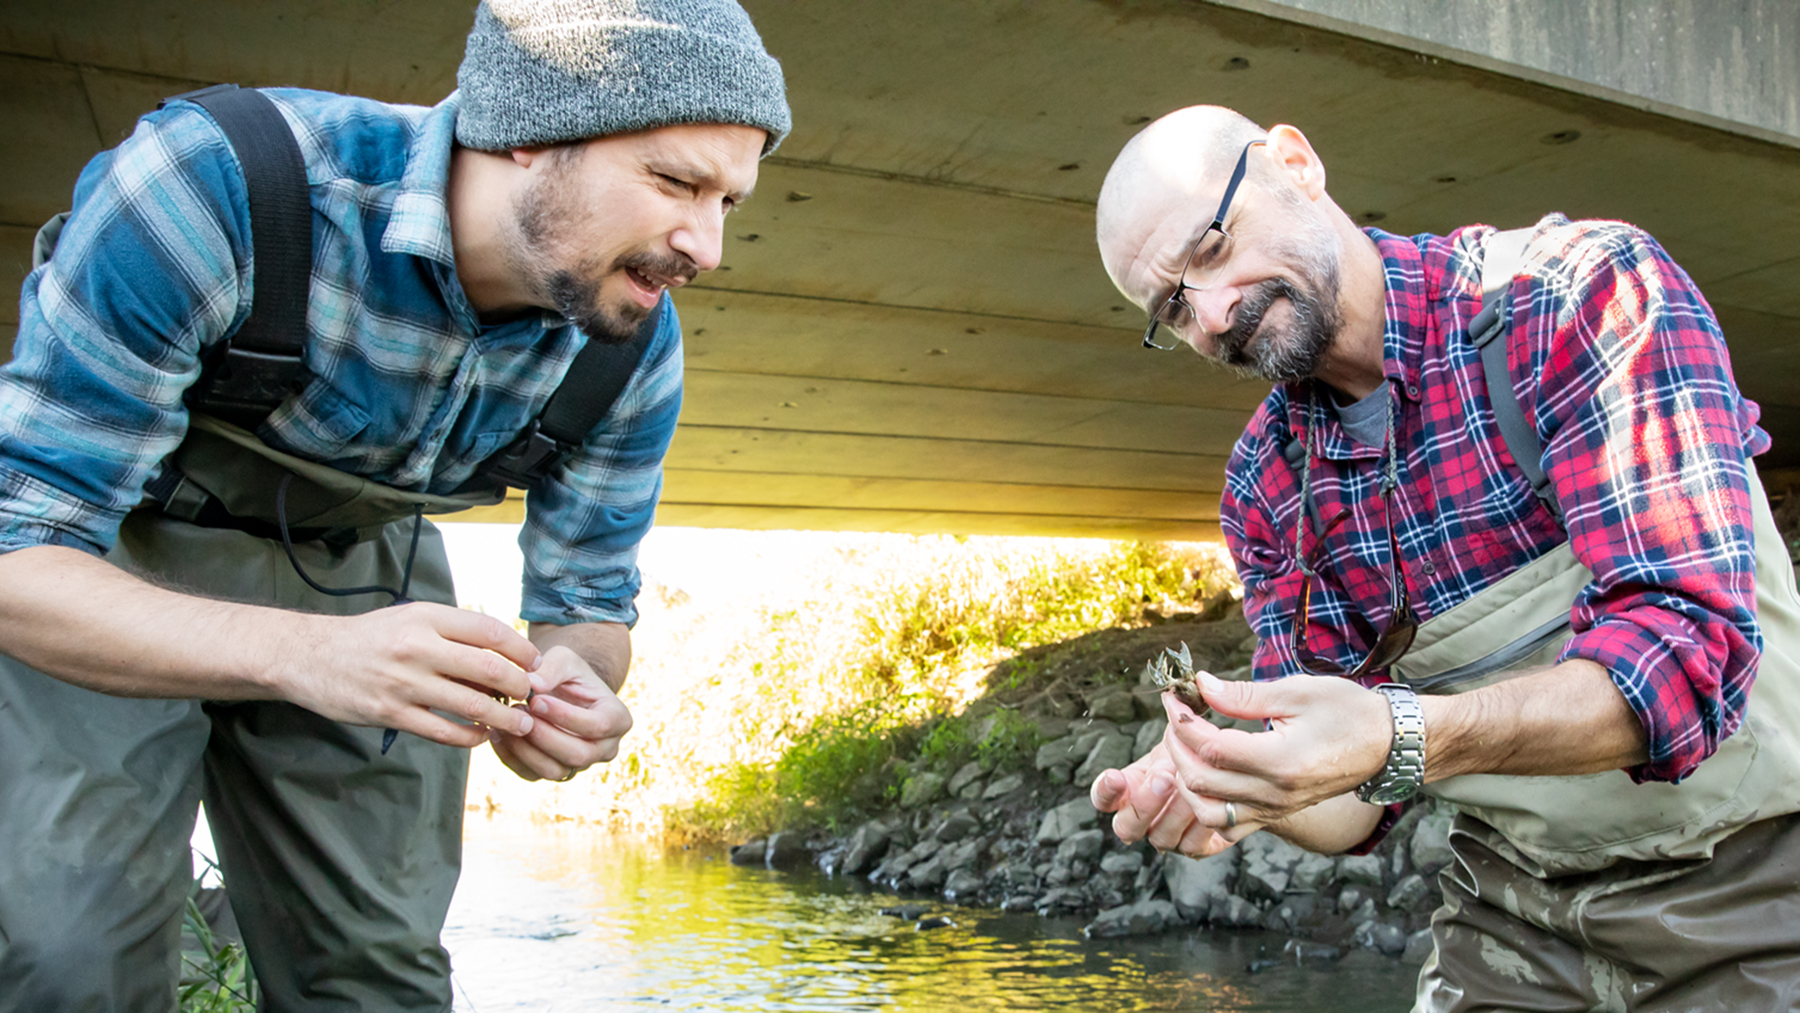 Eric Larson, left, and Christopher Taylor inspect a captured crayfish.  Photo by L. Brian Stauffer